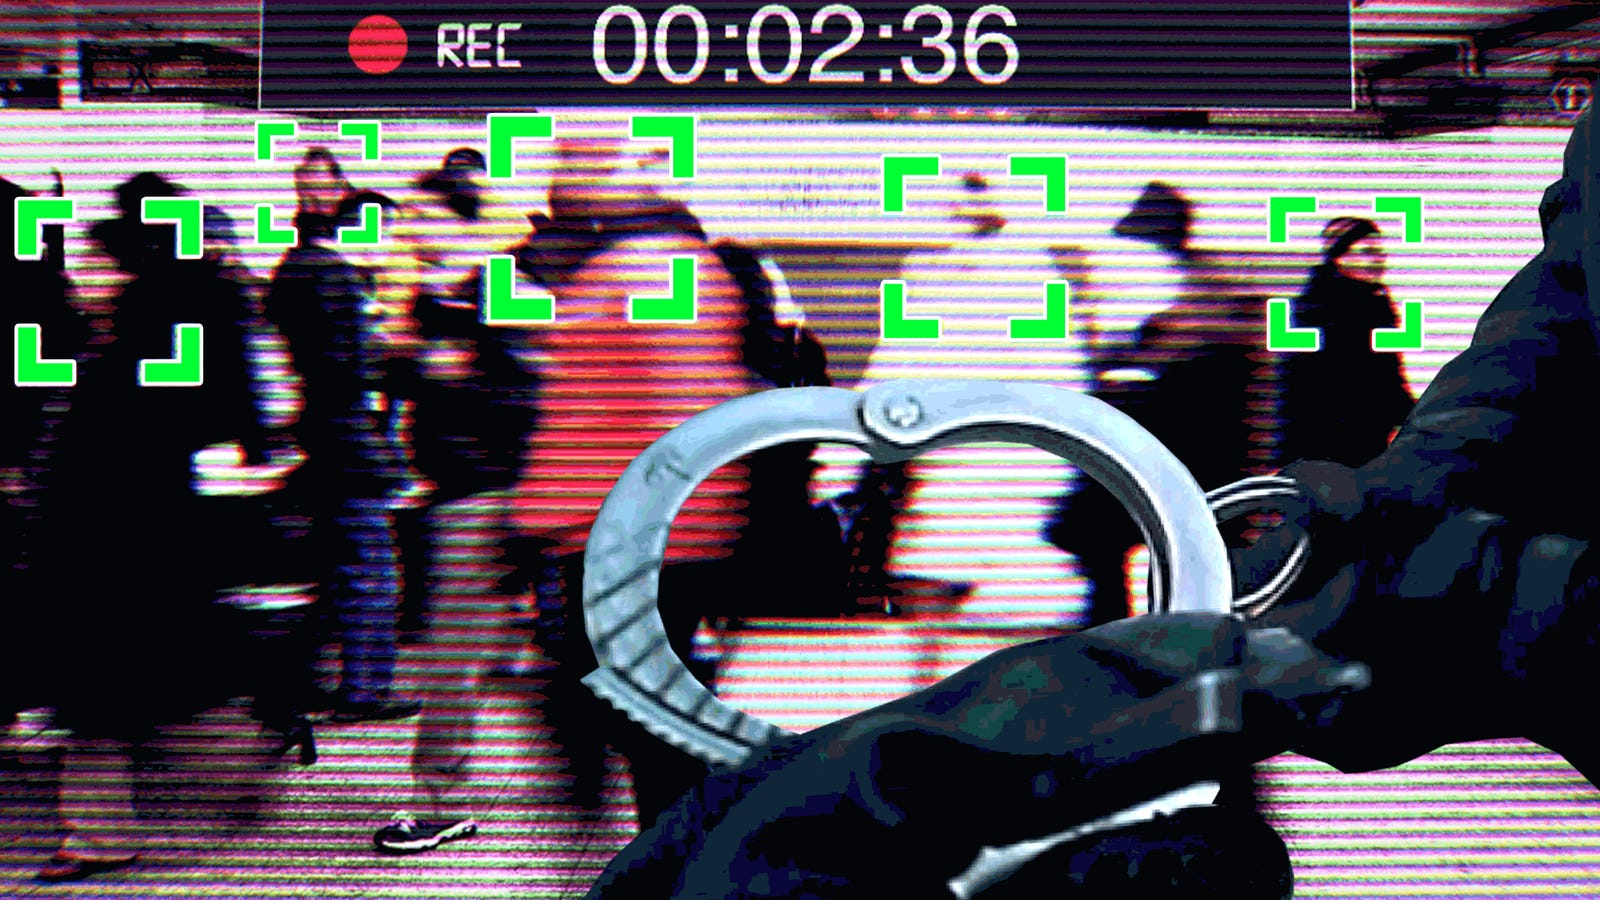 The New Tech That Could Turn Police Body Cams Into Nightmare Surveillance Tools